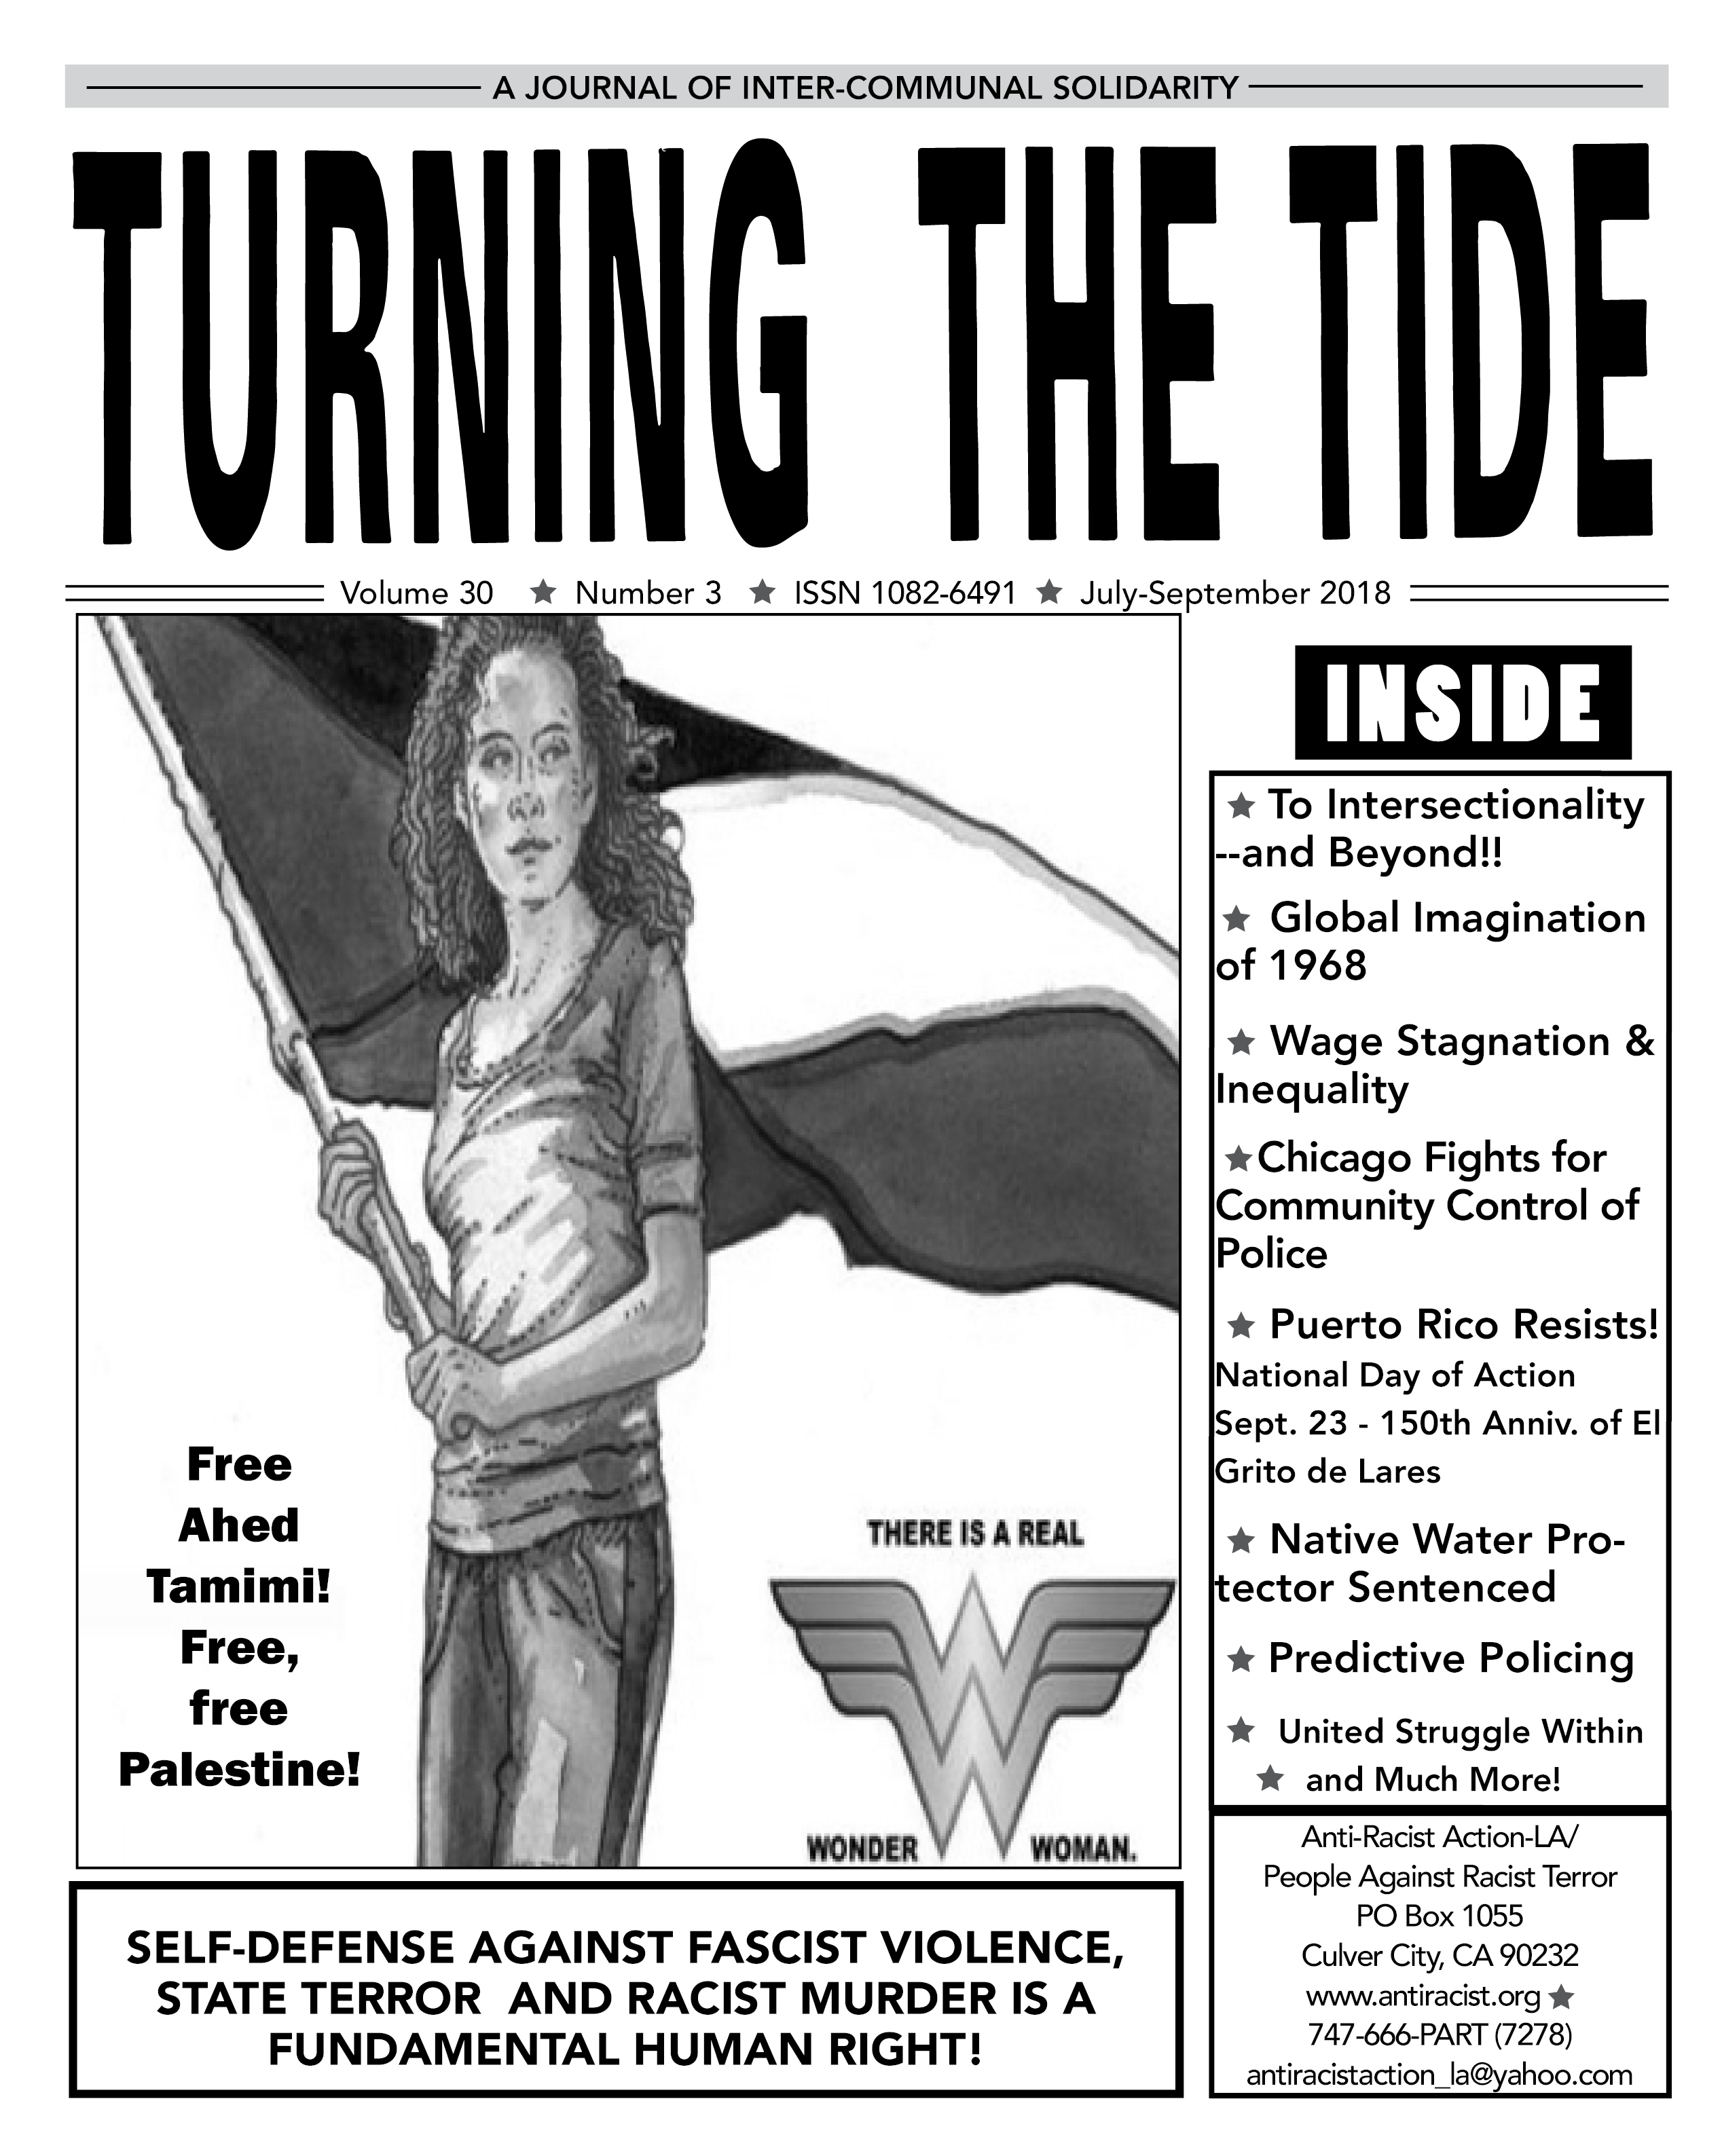 Turning The Tide Vol 30 #3 July-Sept 2018